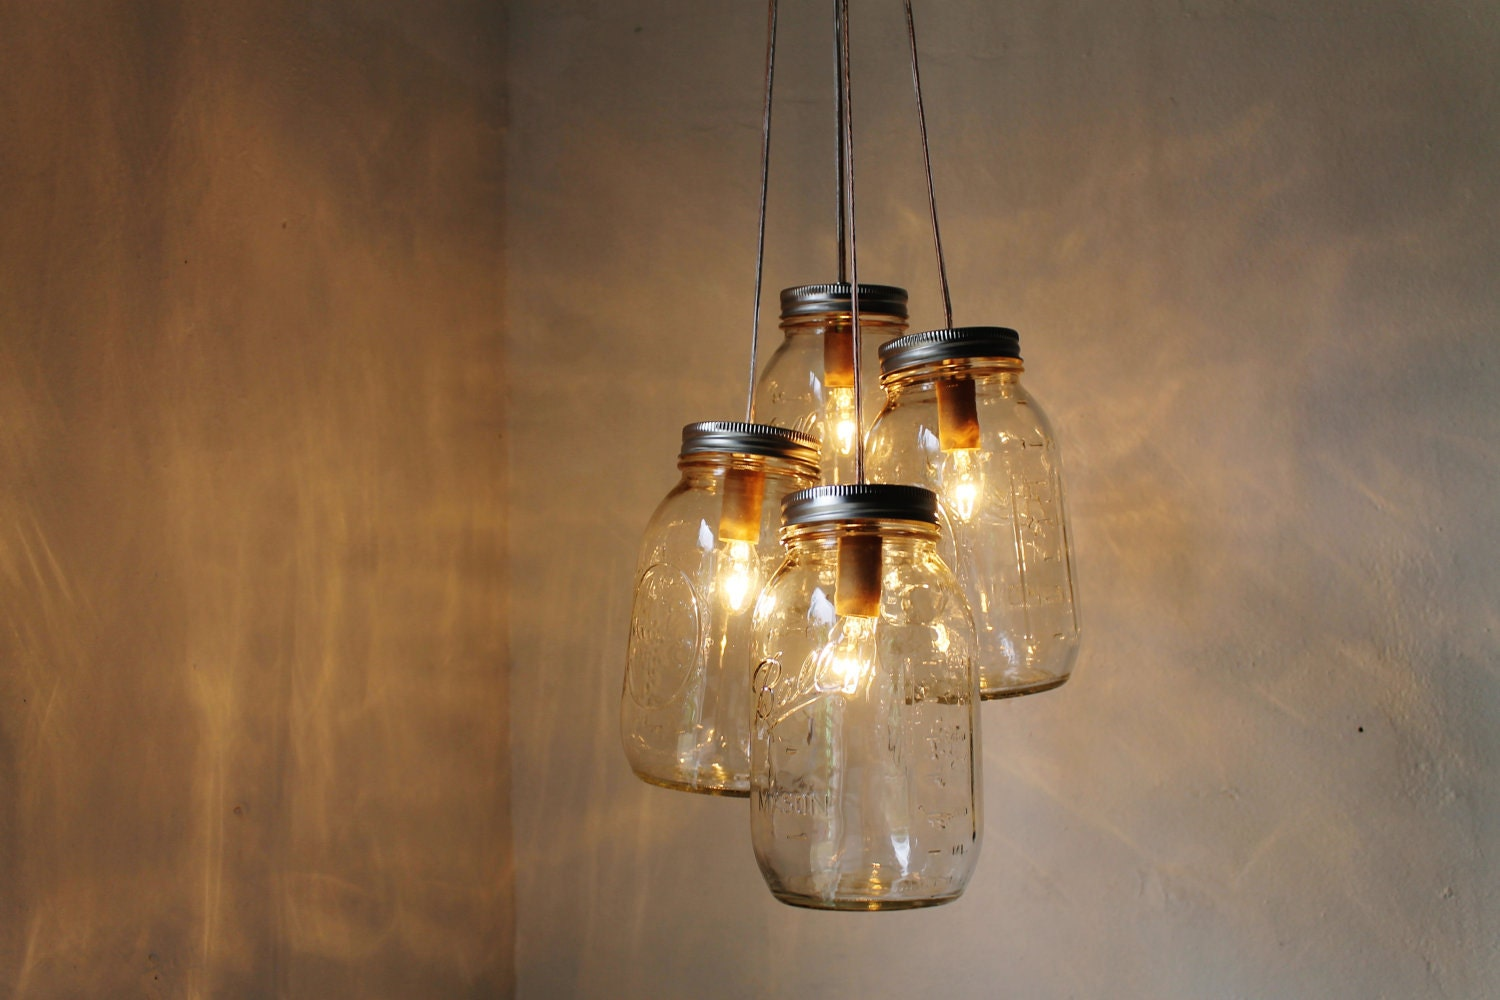 mason jar lighting fixture. zoom mason jar lighting fixture a